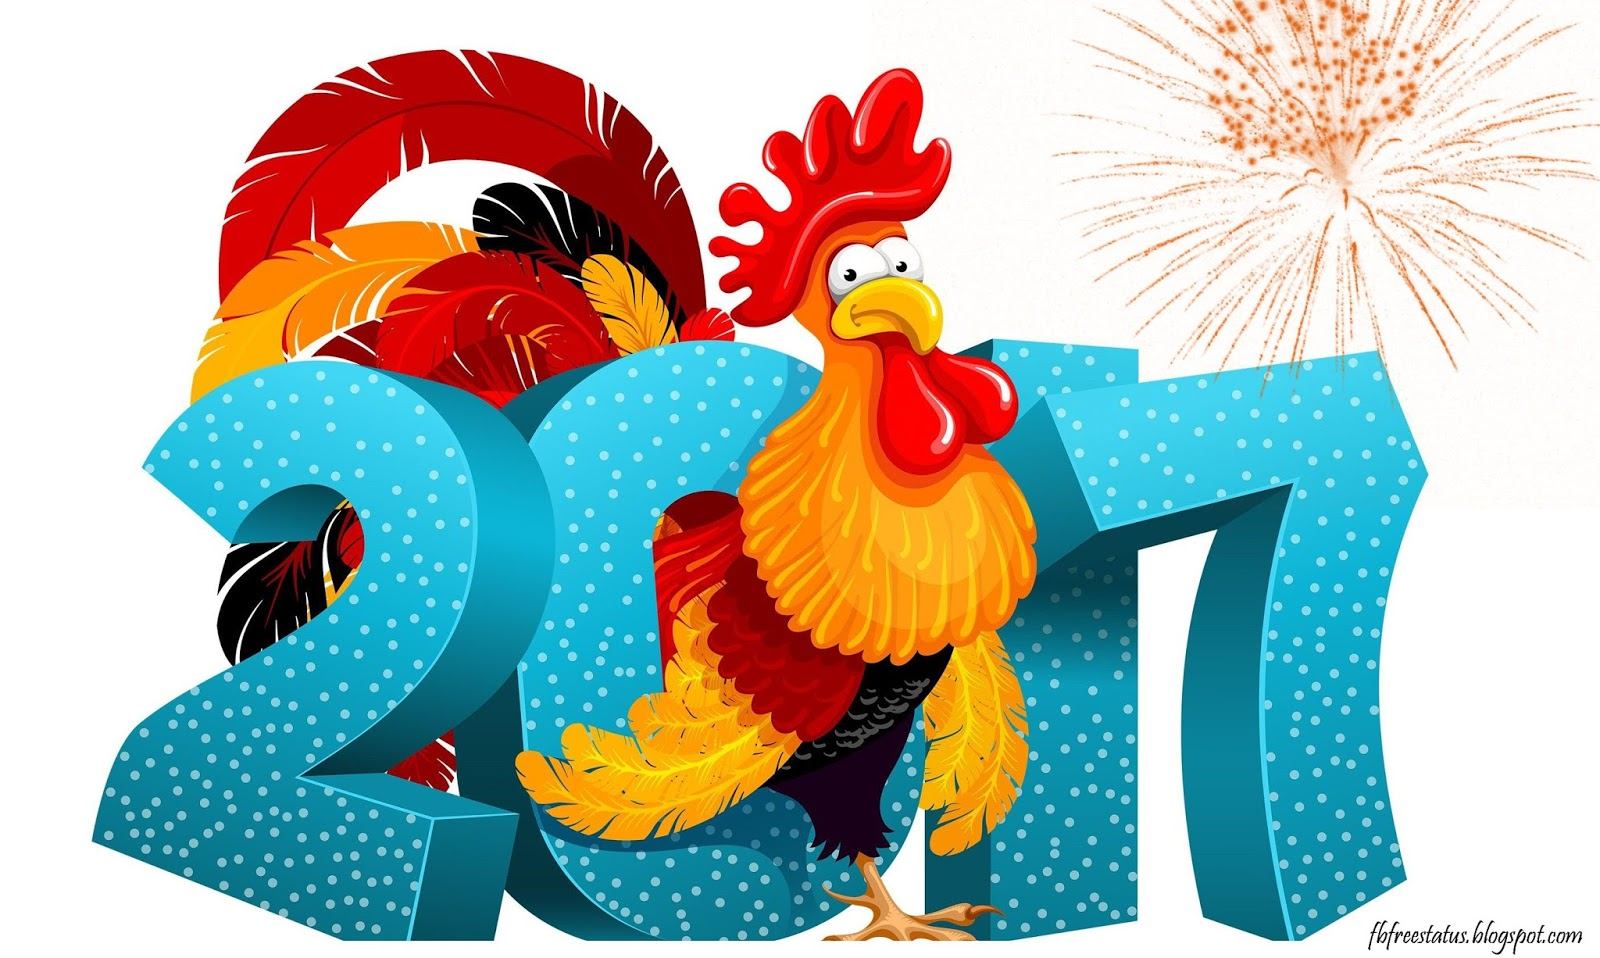 Happy New Year-2017 Rooster year Images